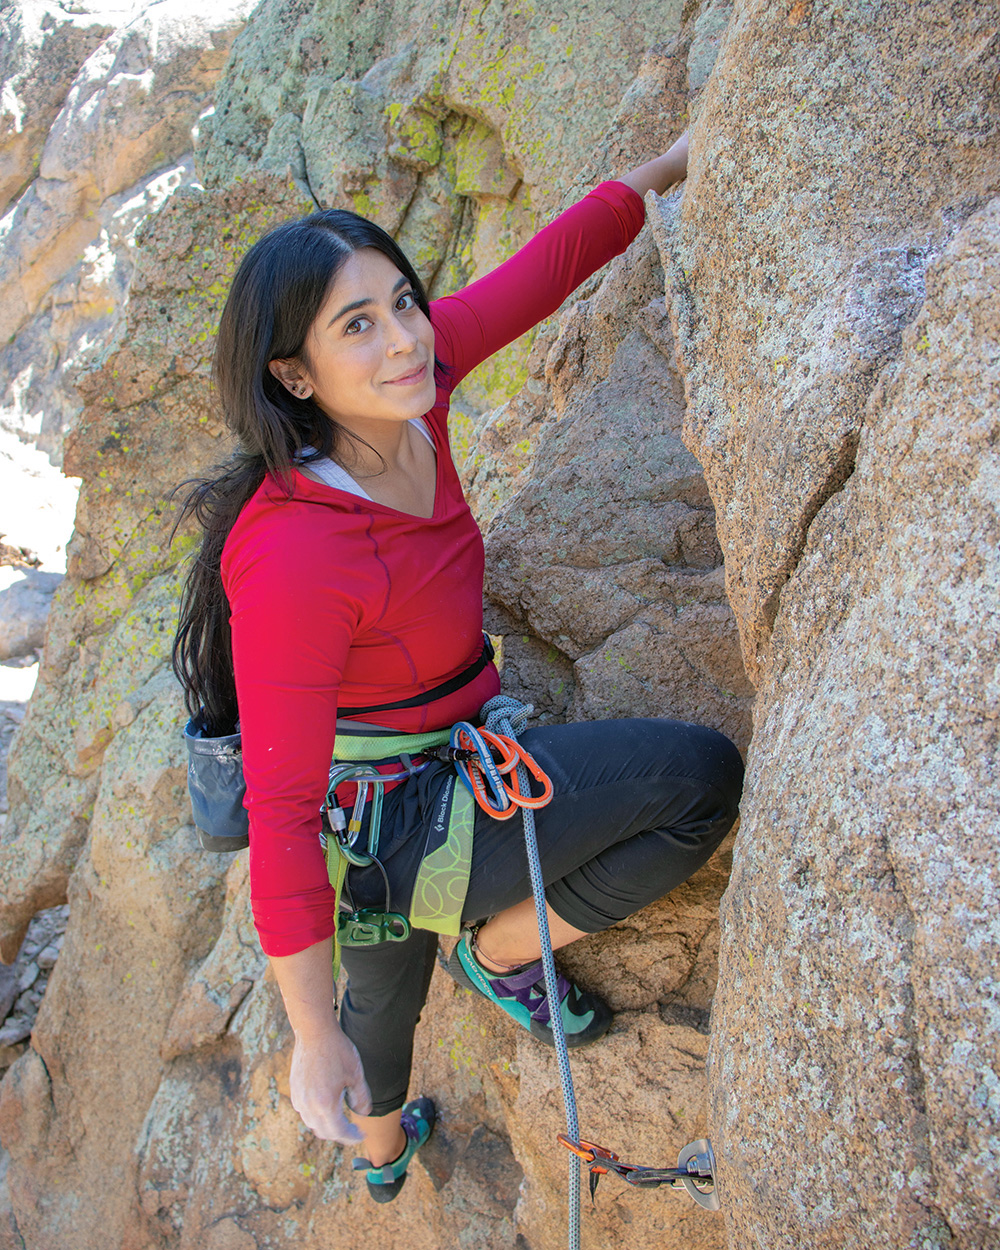 Maricela Rosales Ready on Claim Jumper (5.10a), Holcomb Valley, Southern California, in 2019.